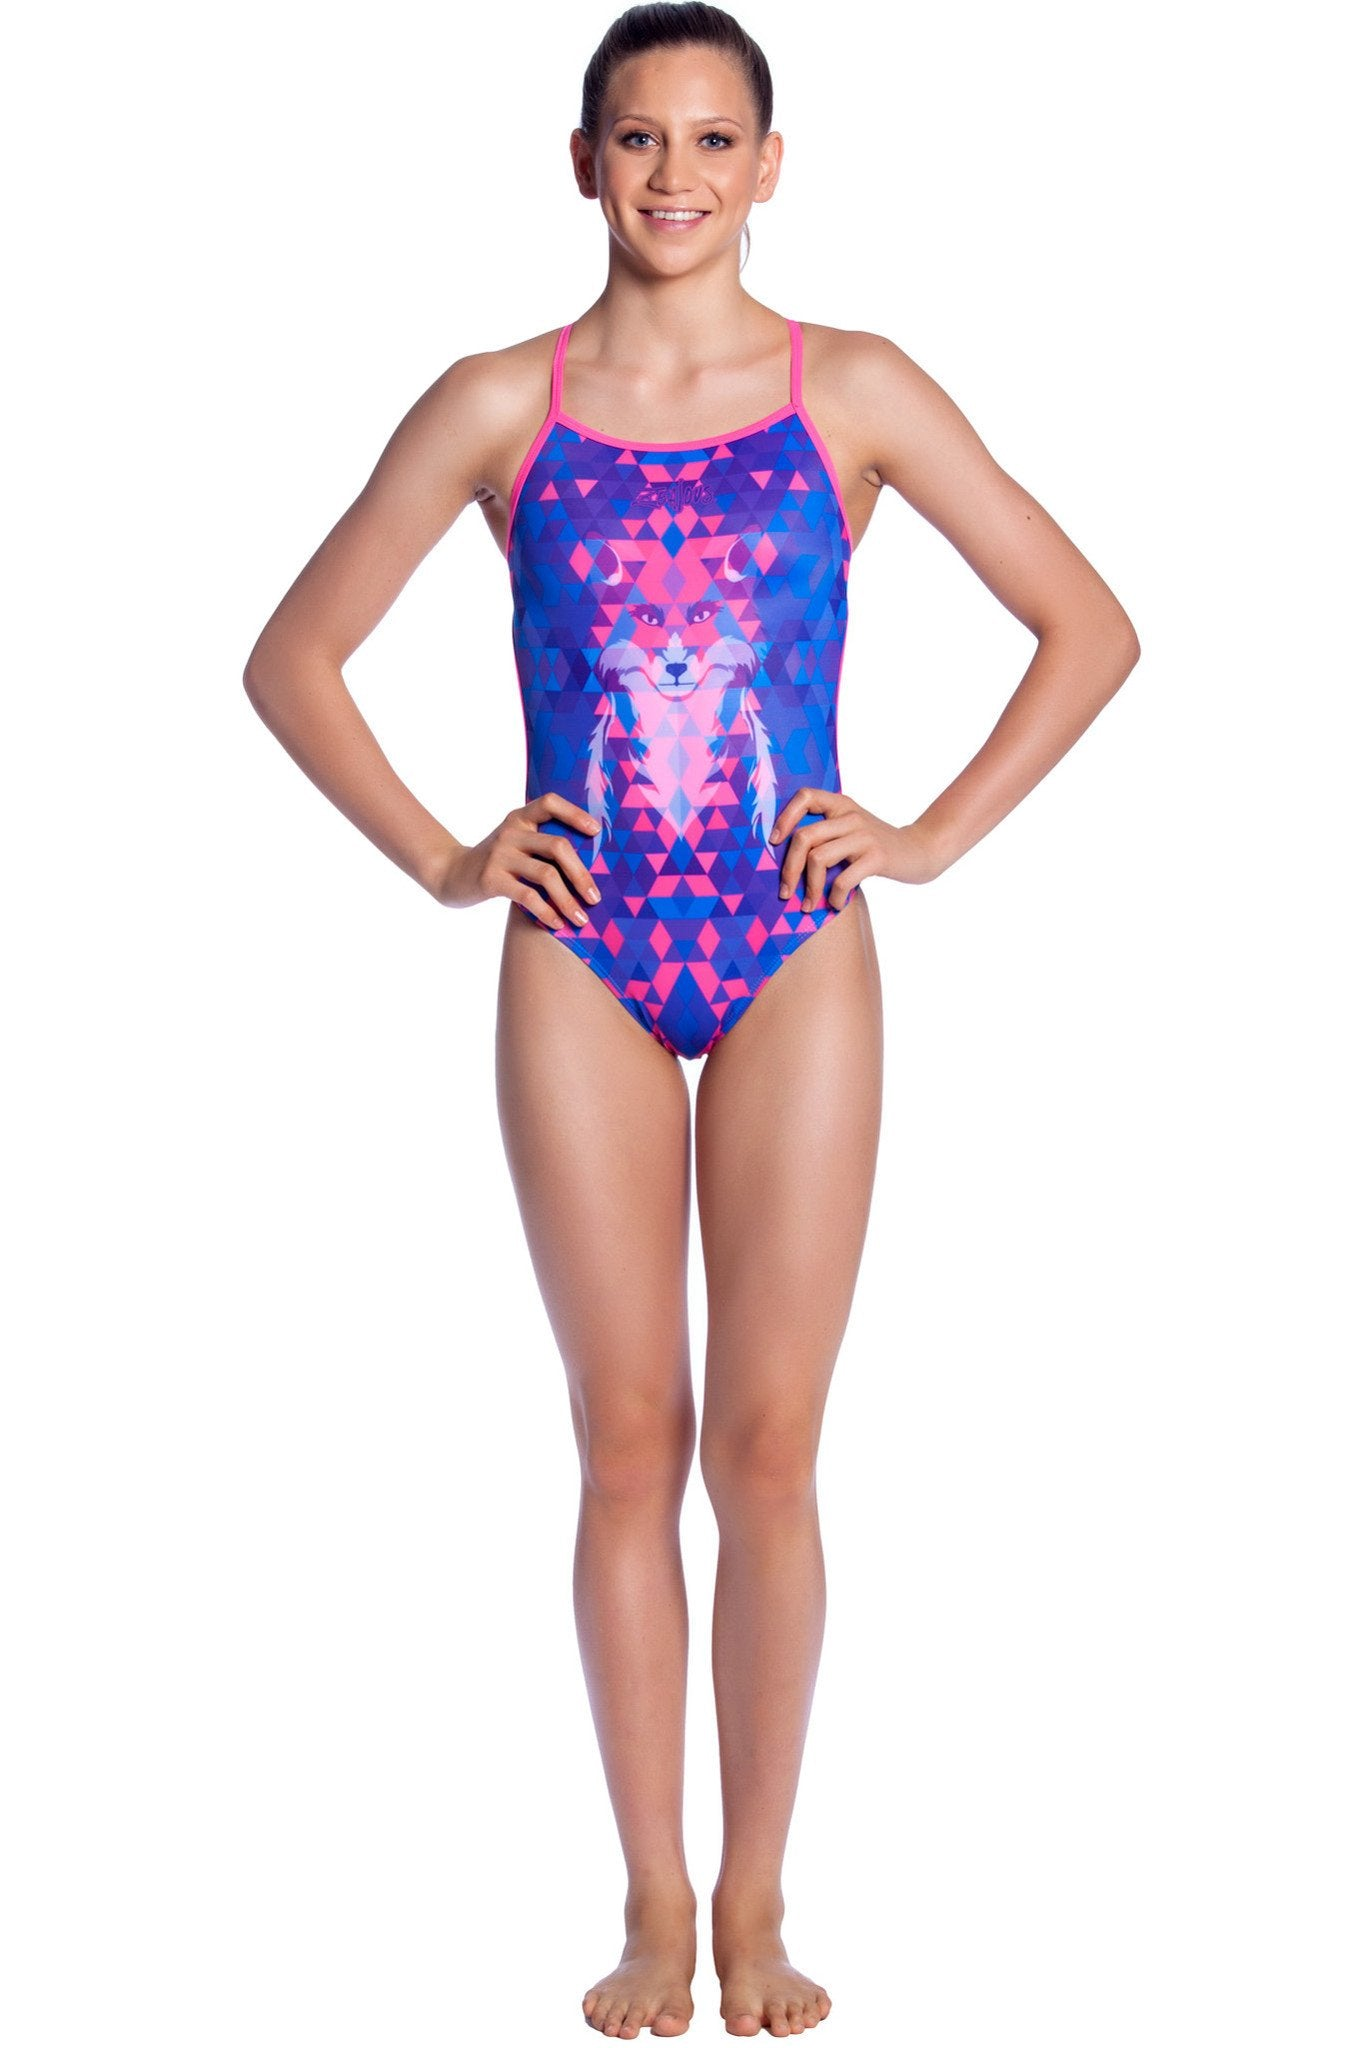 Foxtrot Girls Thin Strap - Shop Zealous Training Swimwear